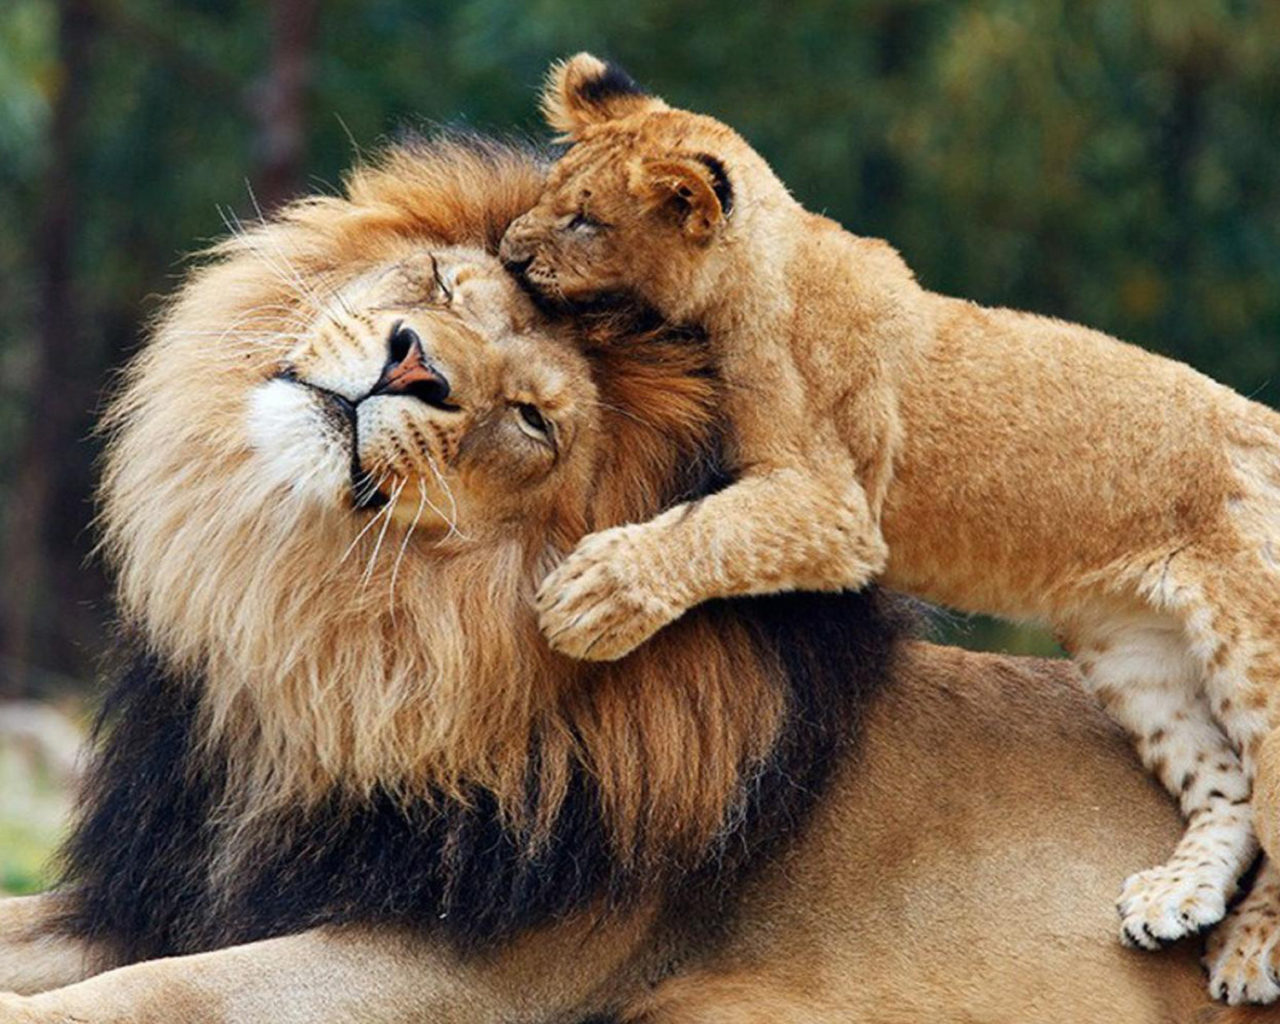 Lion Hd Wallpapers For Iphone Lions Game Between Parent And Cub Lion Wallpaper Hd